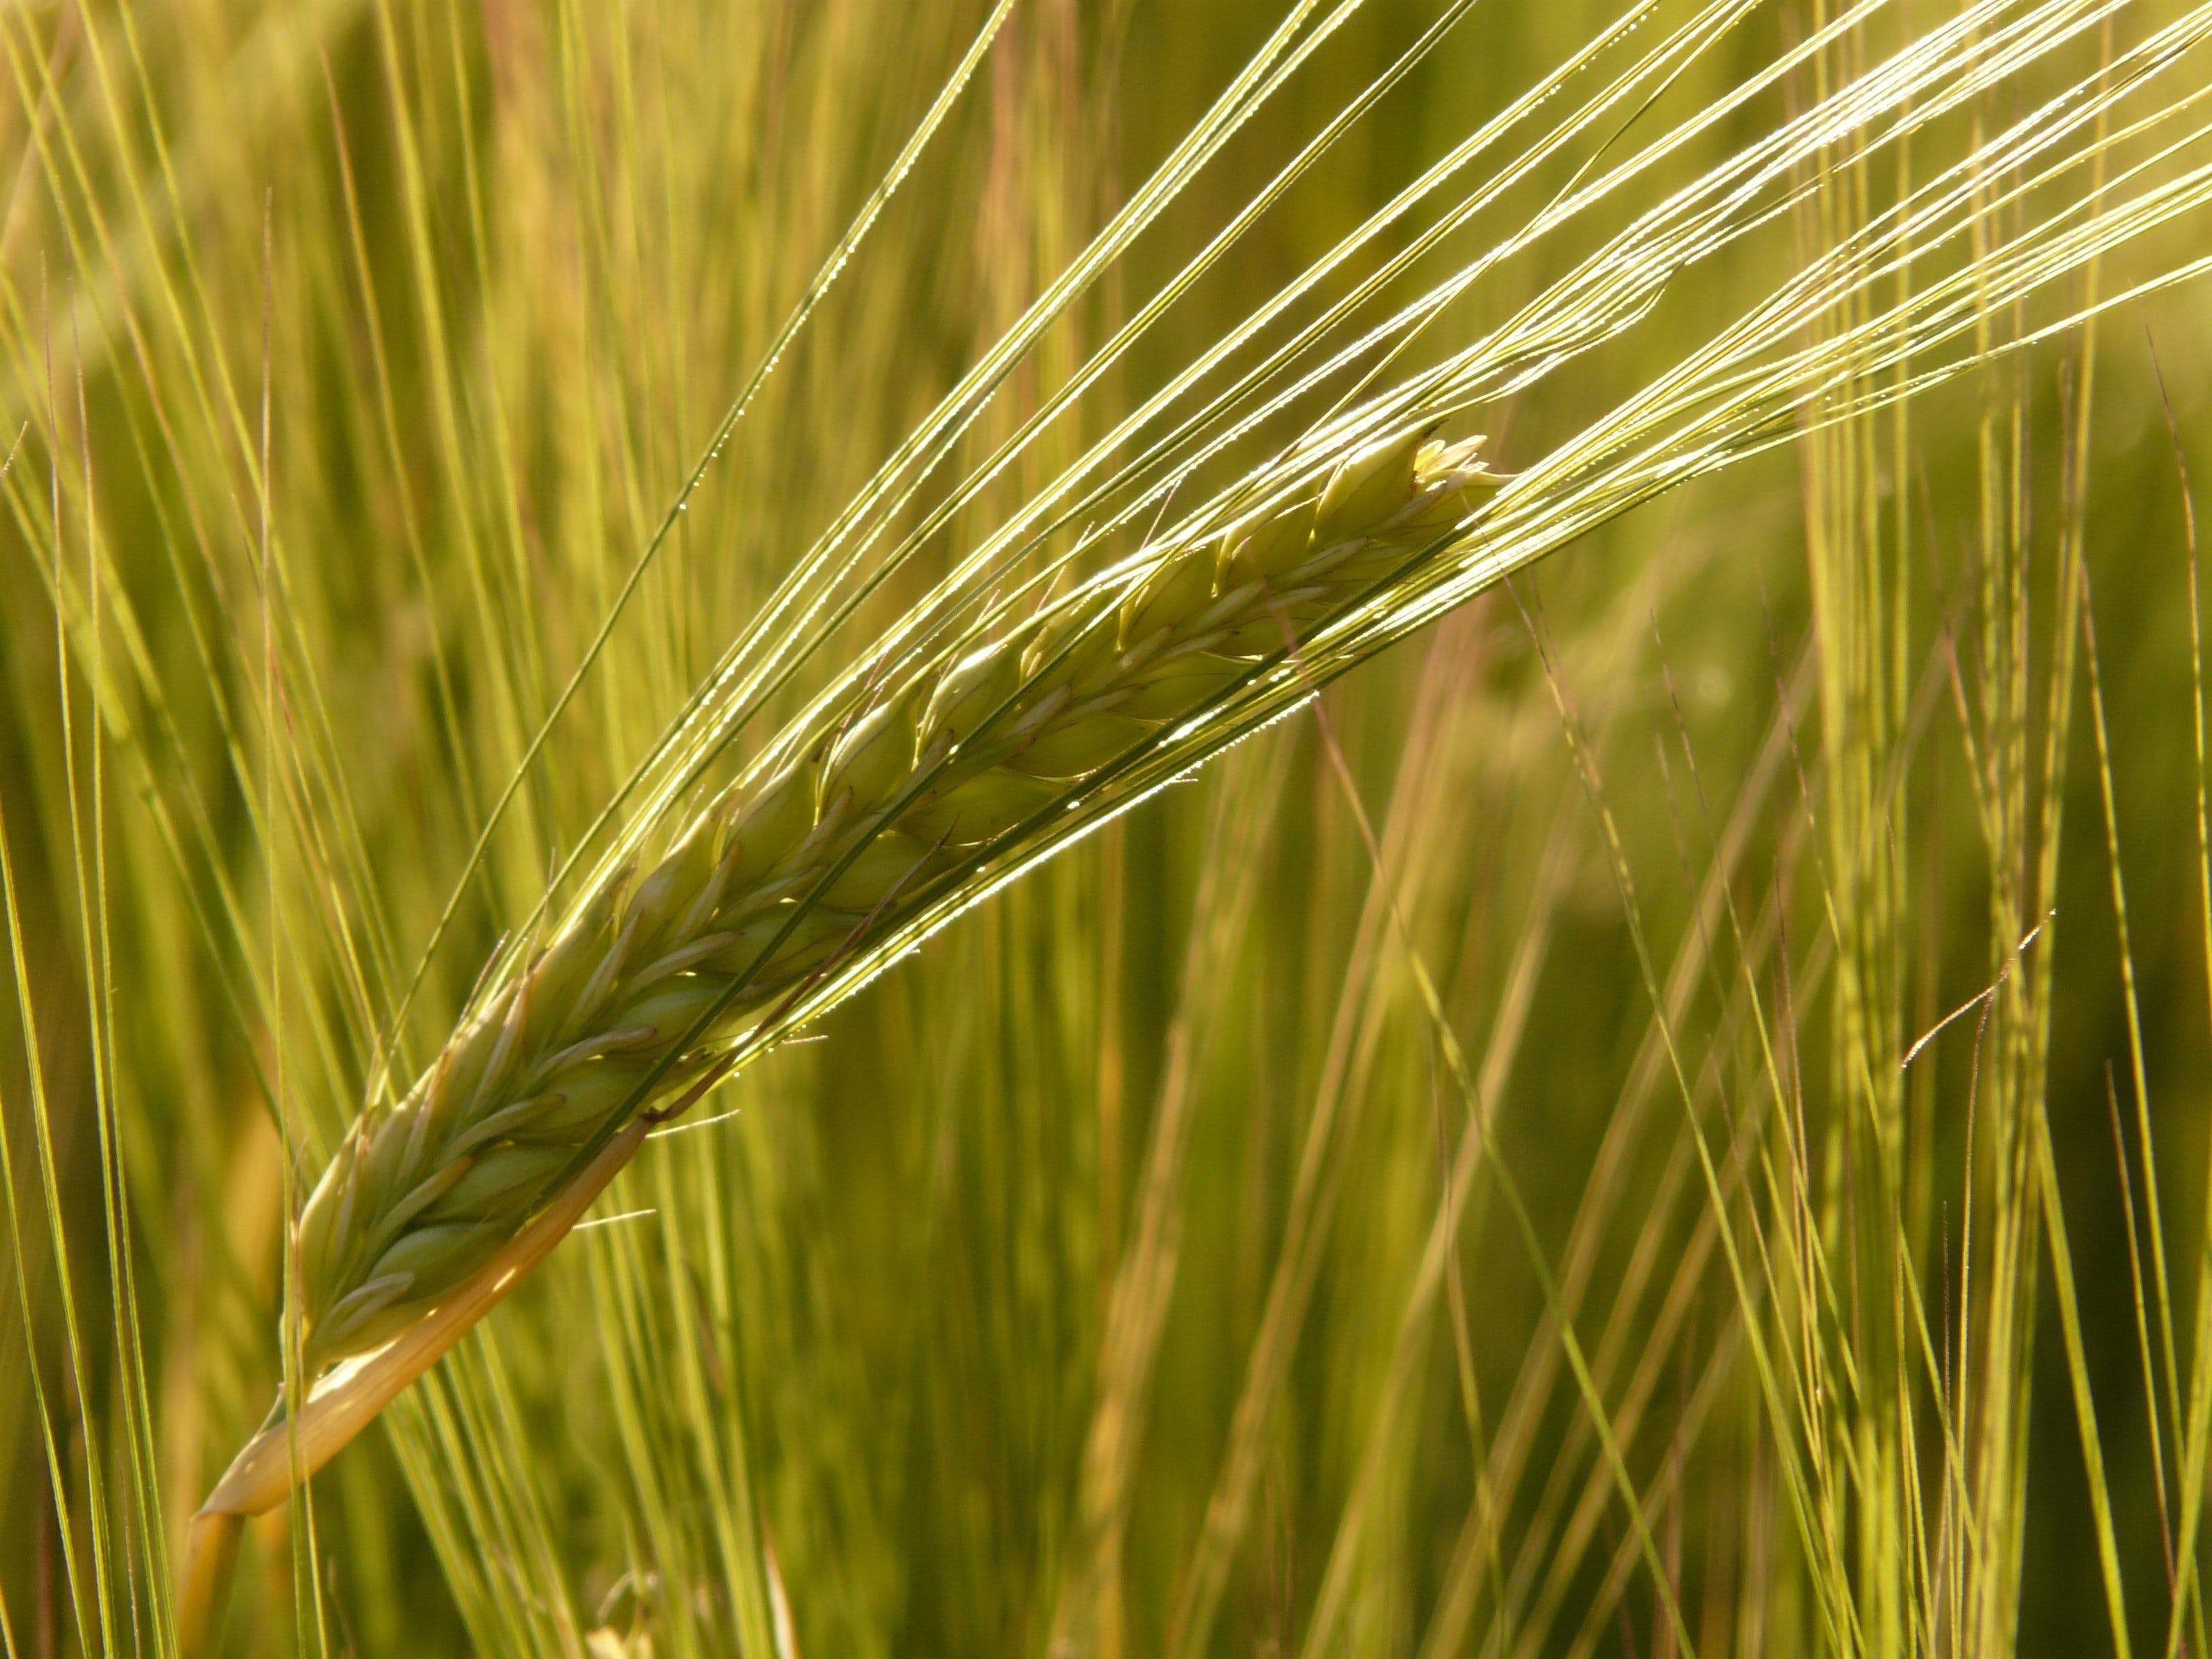 Free stock photo of field, grass, plant, grain